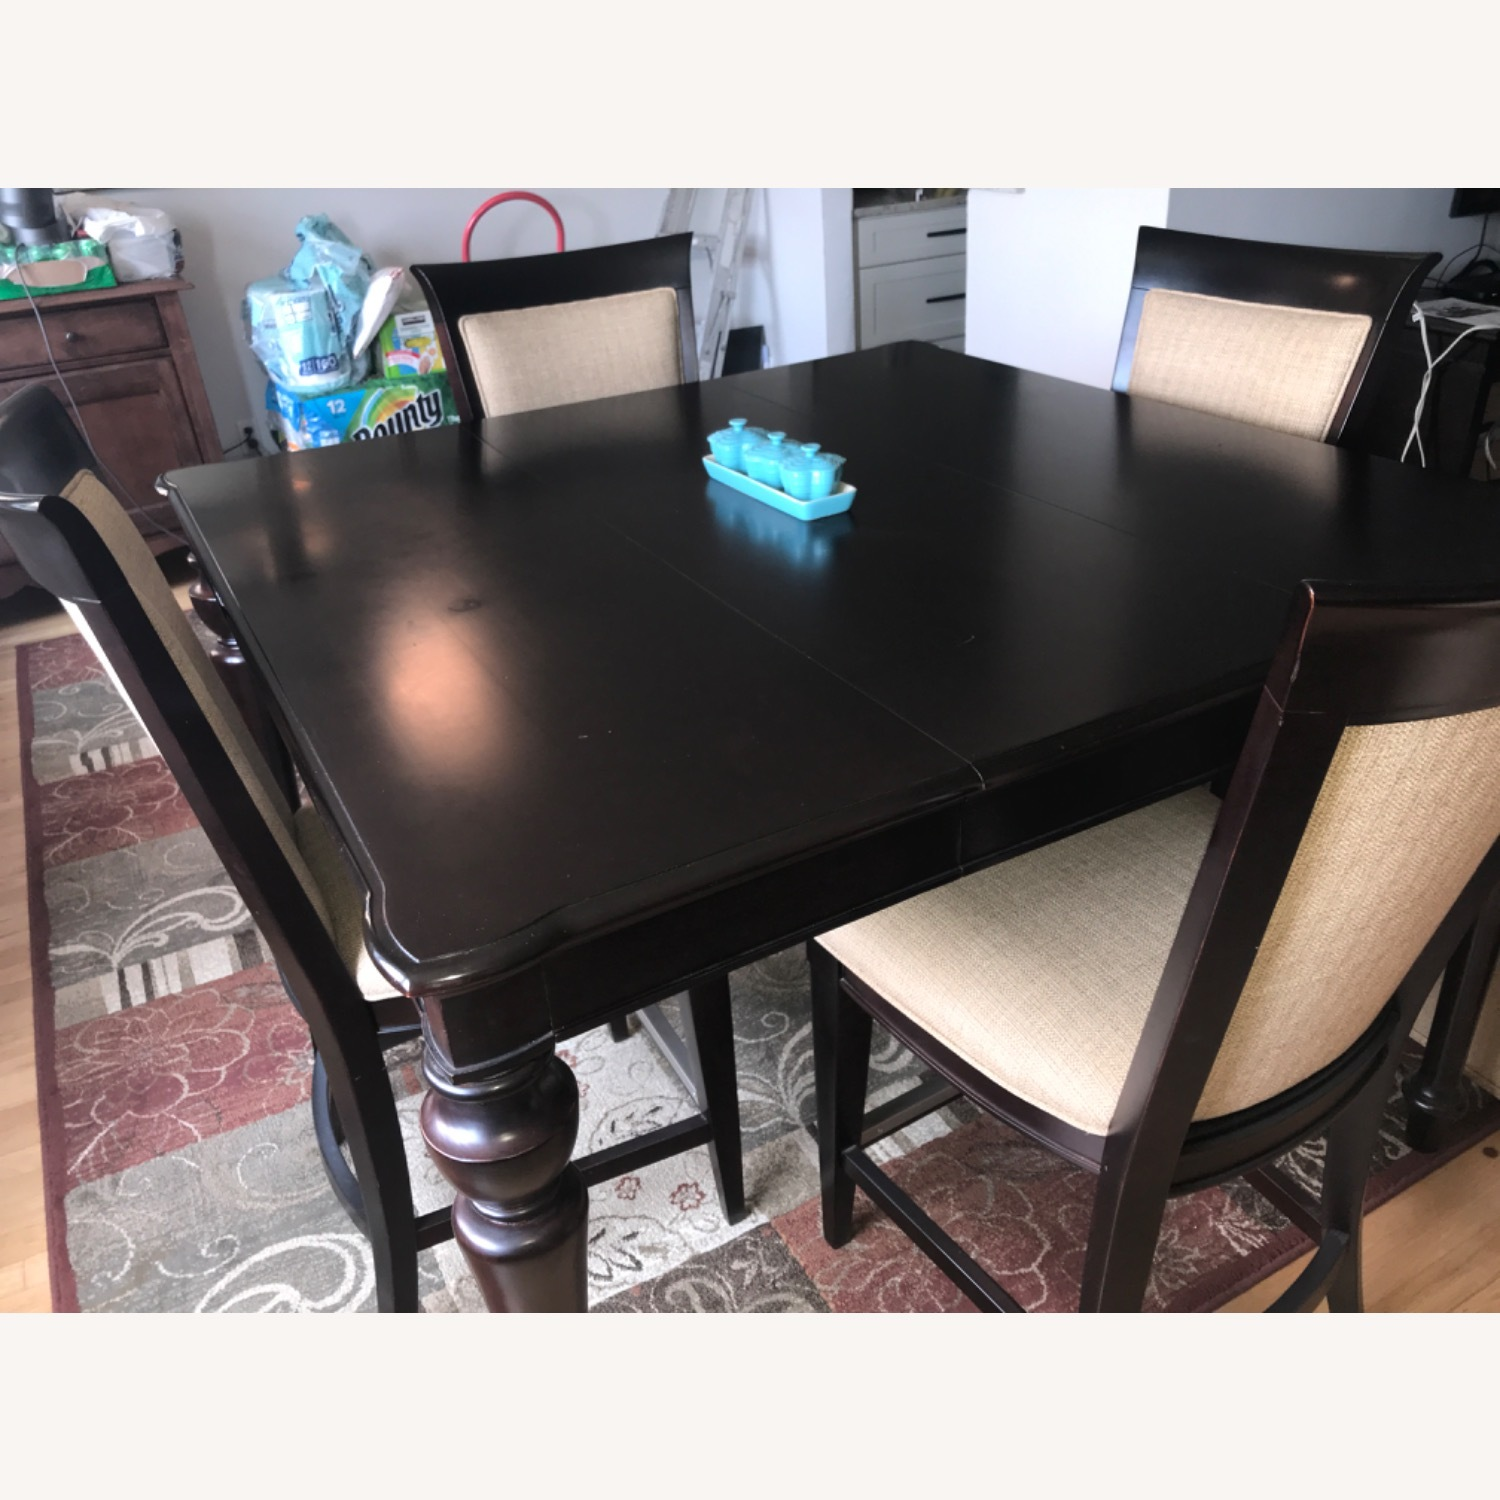 Havertys Copley Square Gathering Dining Table Set with Leaf - image-2